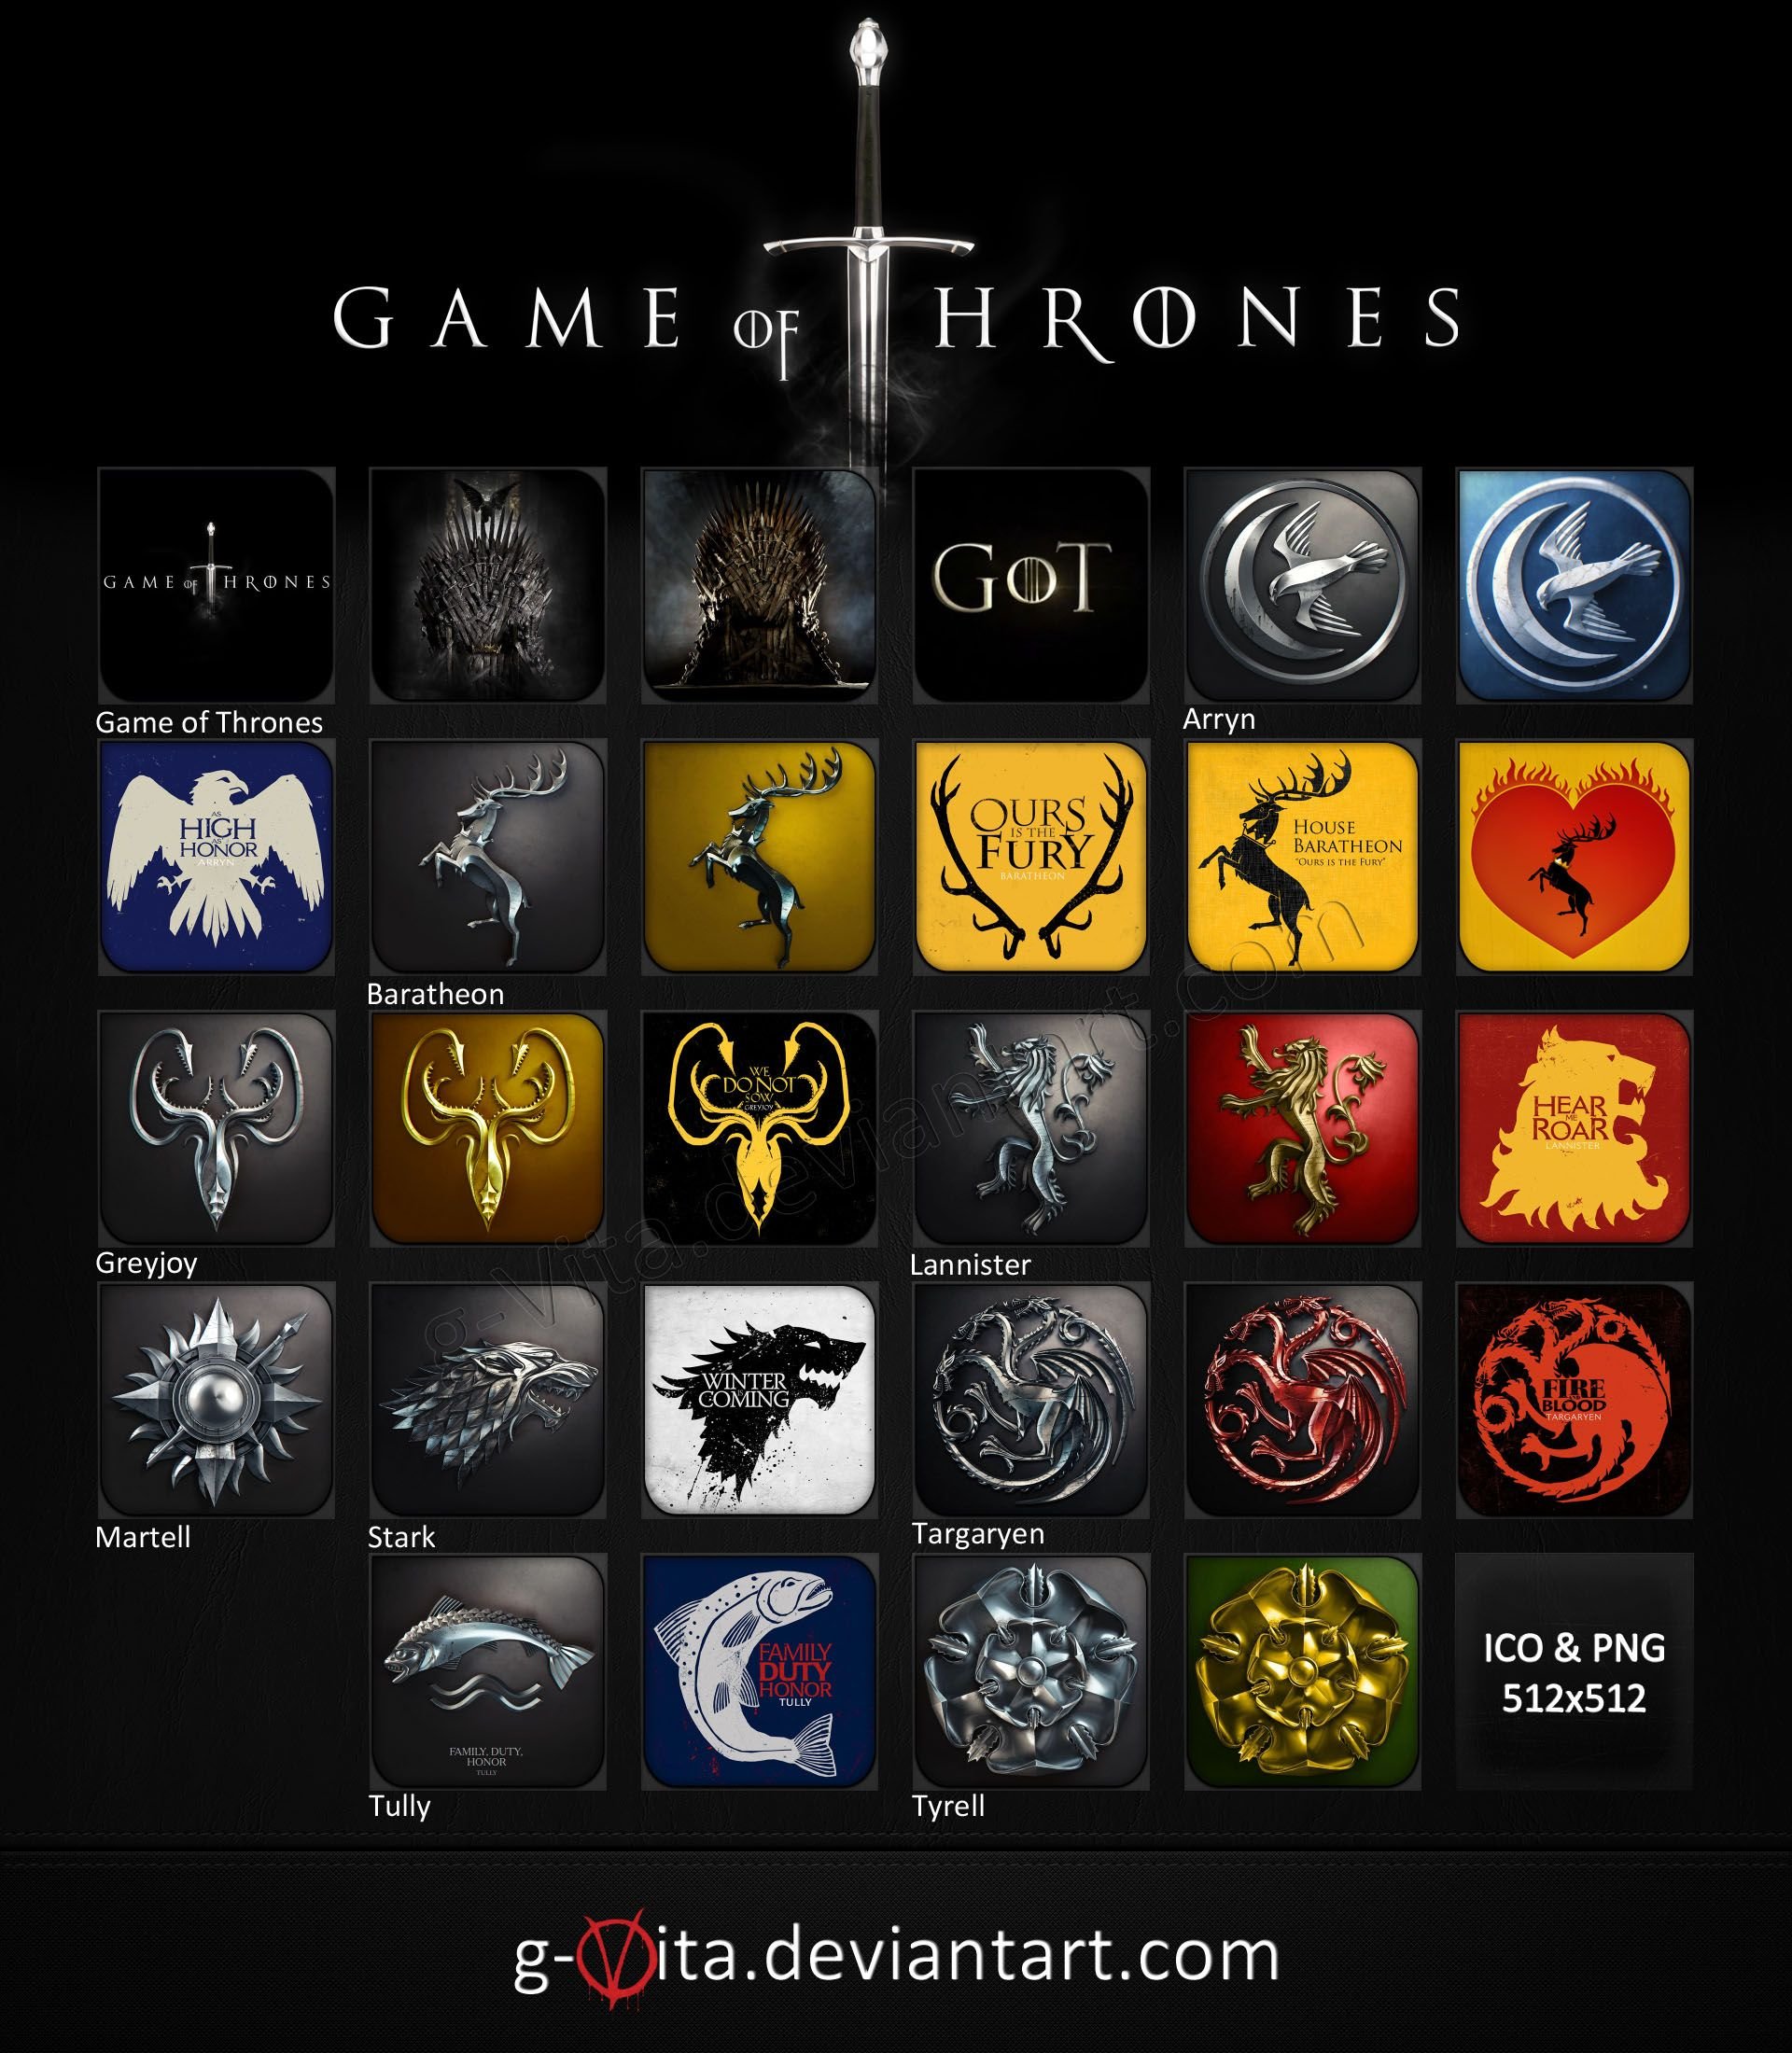 Game of thrones icons dreamwidth